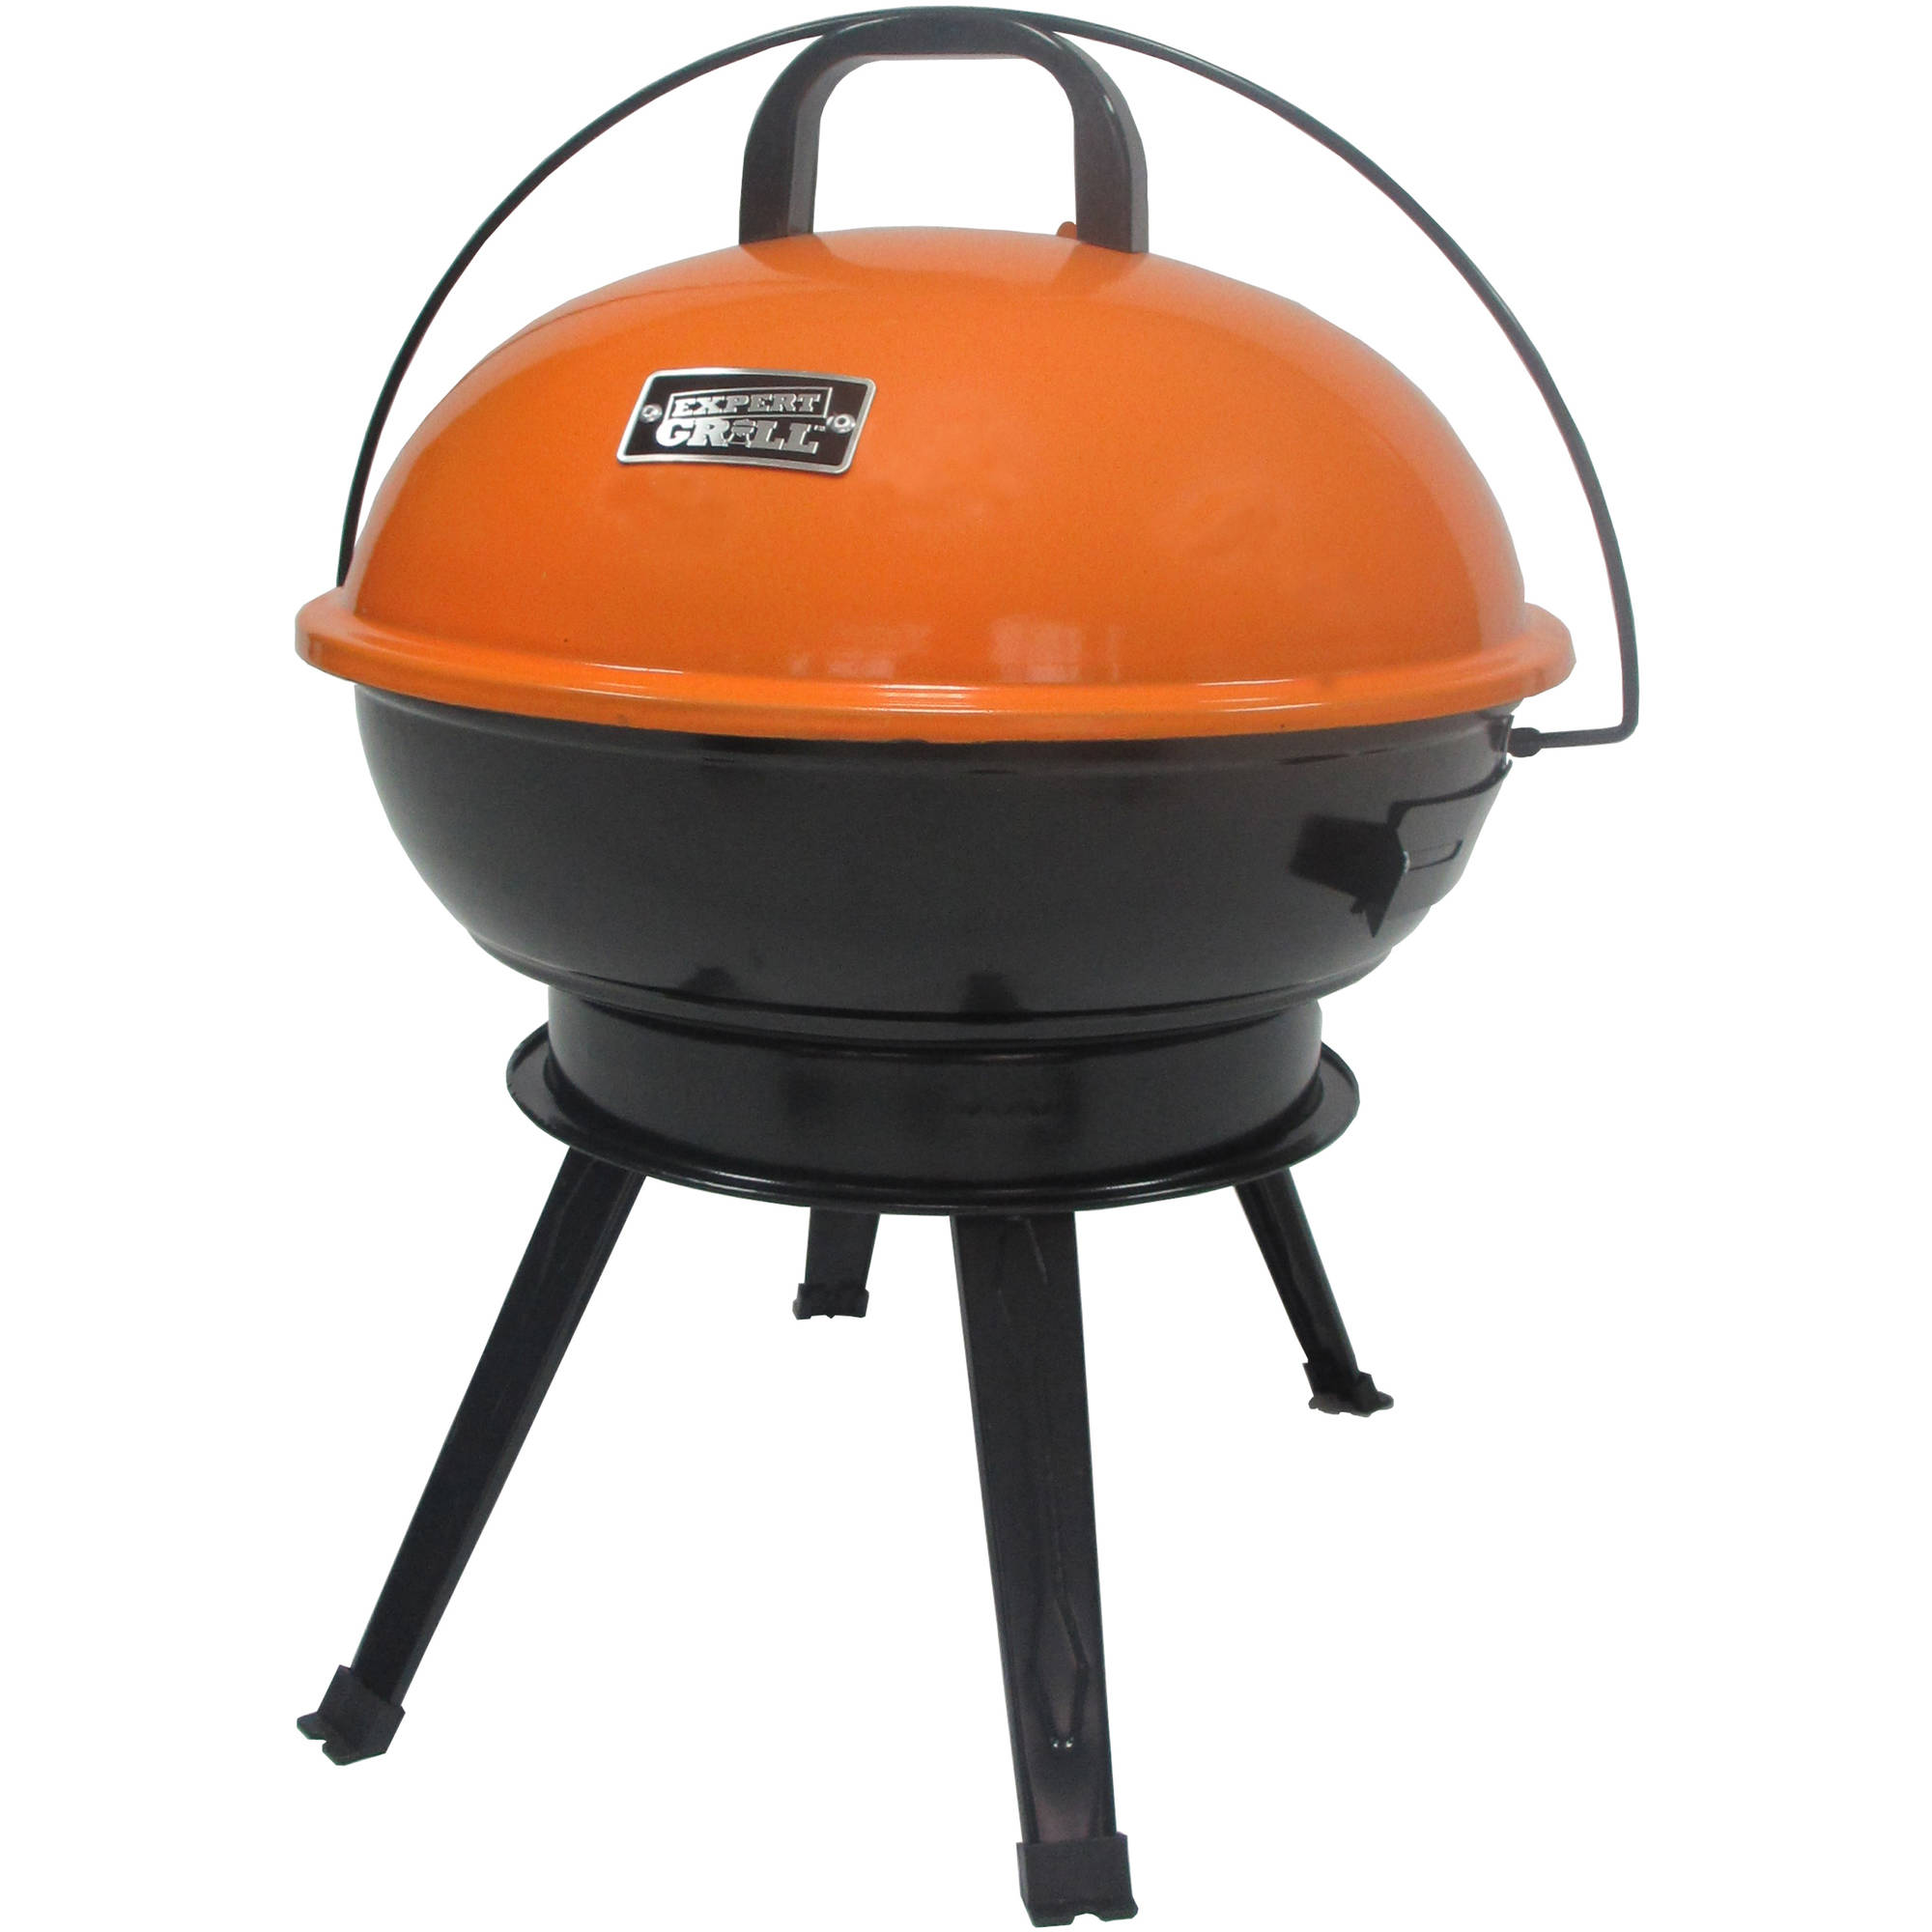 "Expert Grill 14.5"" Portable Charcoal Grill, Competitive Orange"